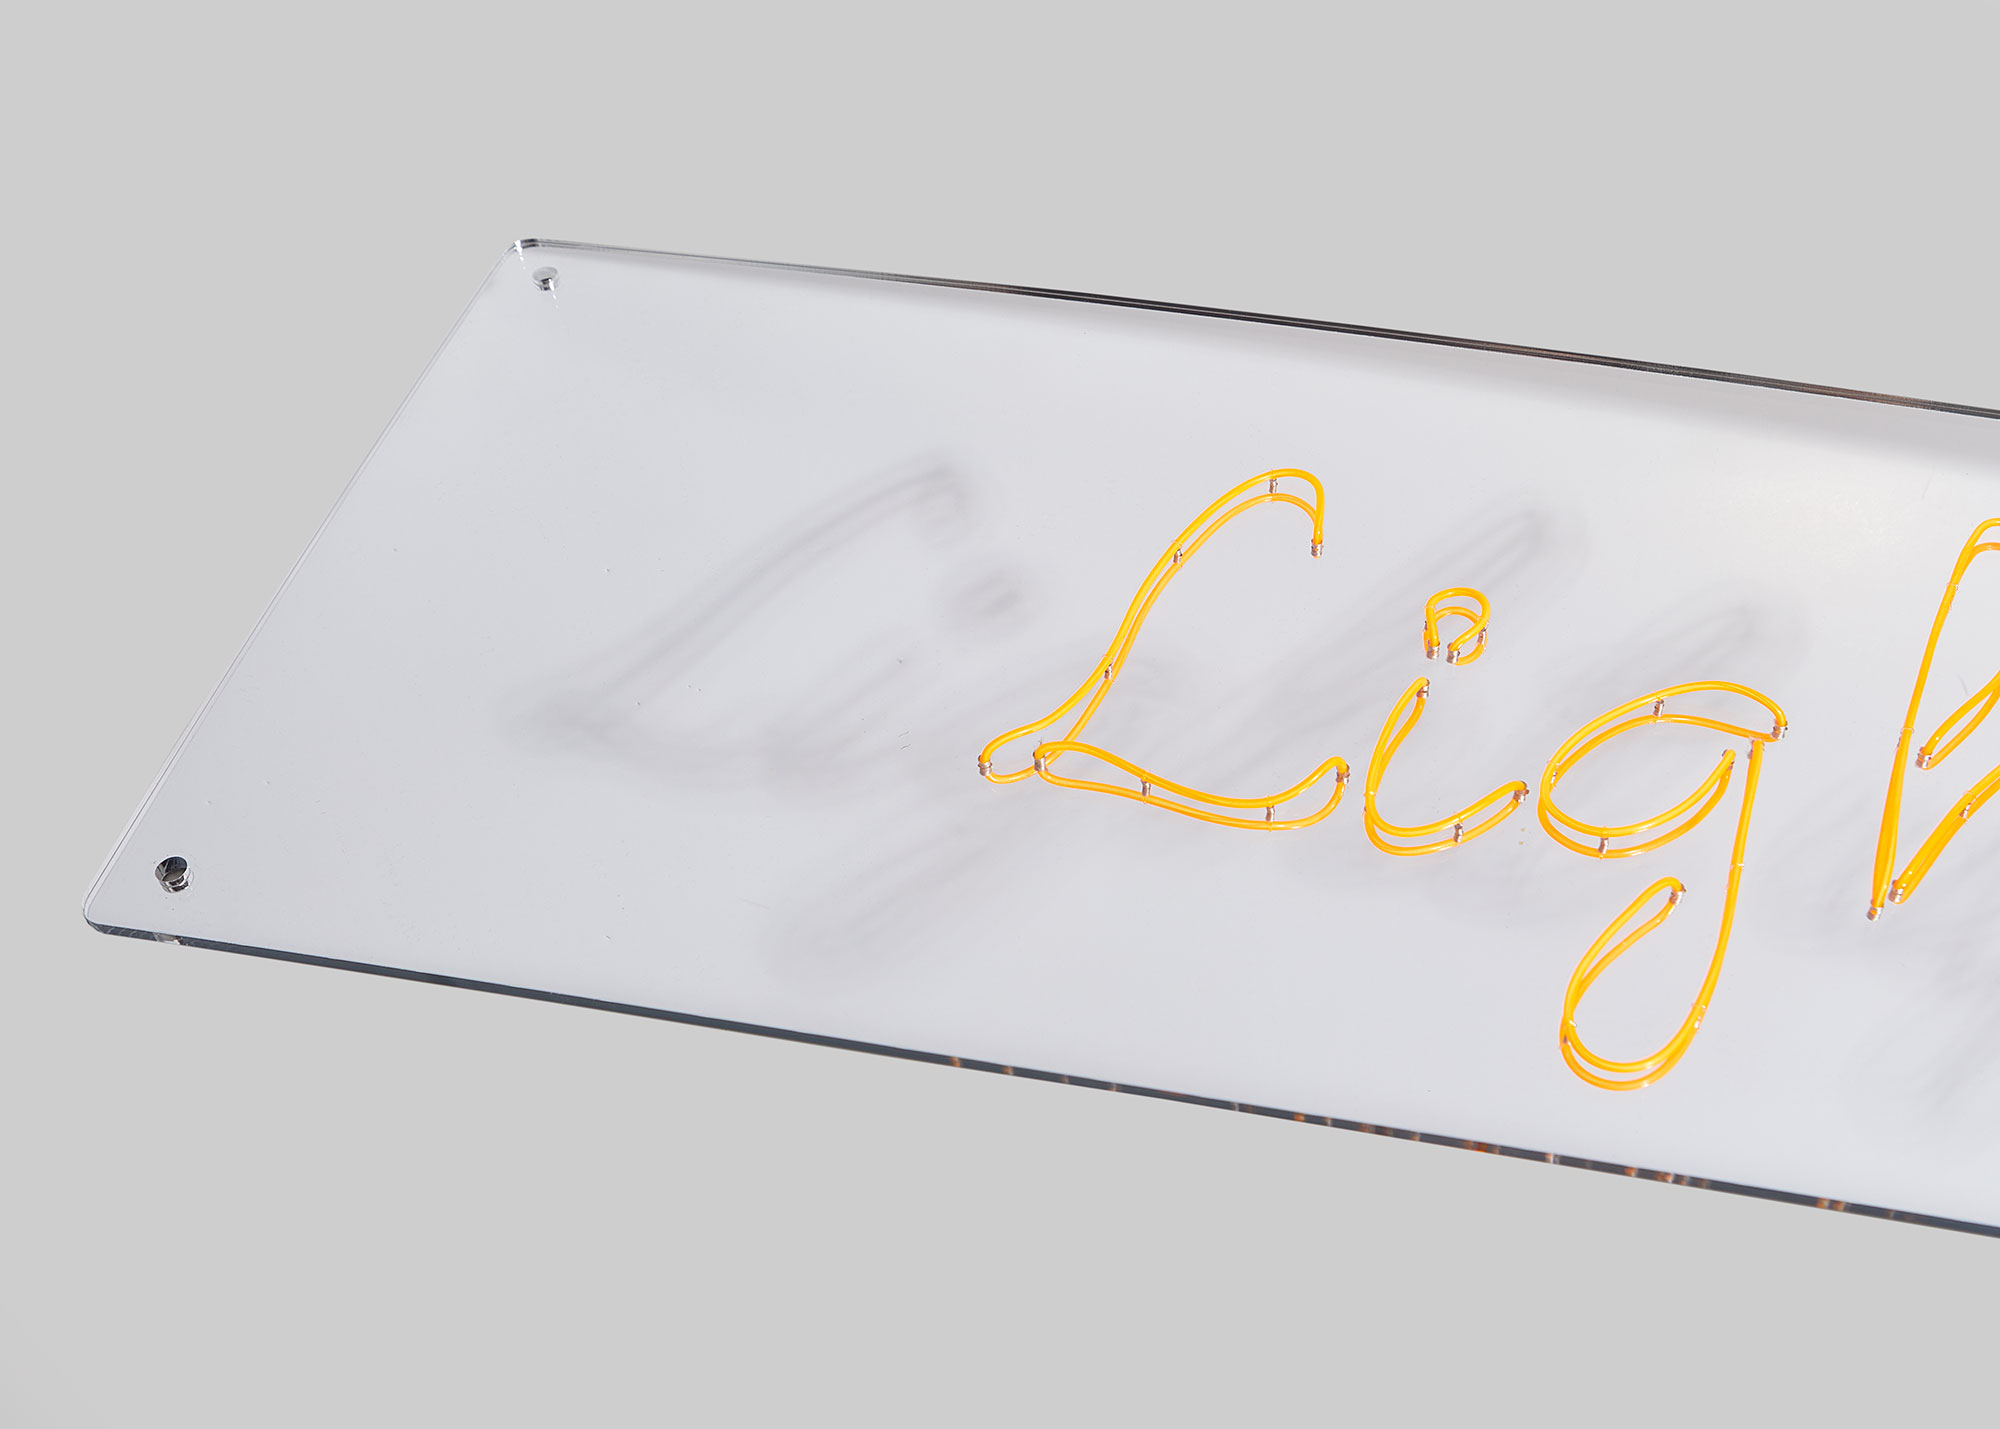 Mirrored Perspex - Mirrored perspex with your choice of text, font and colour.